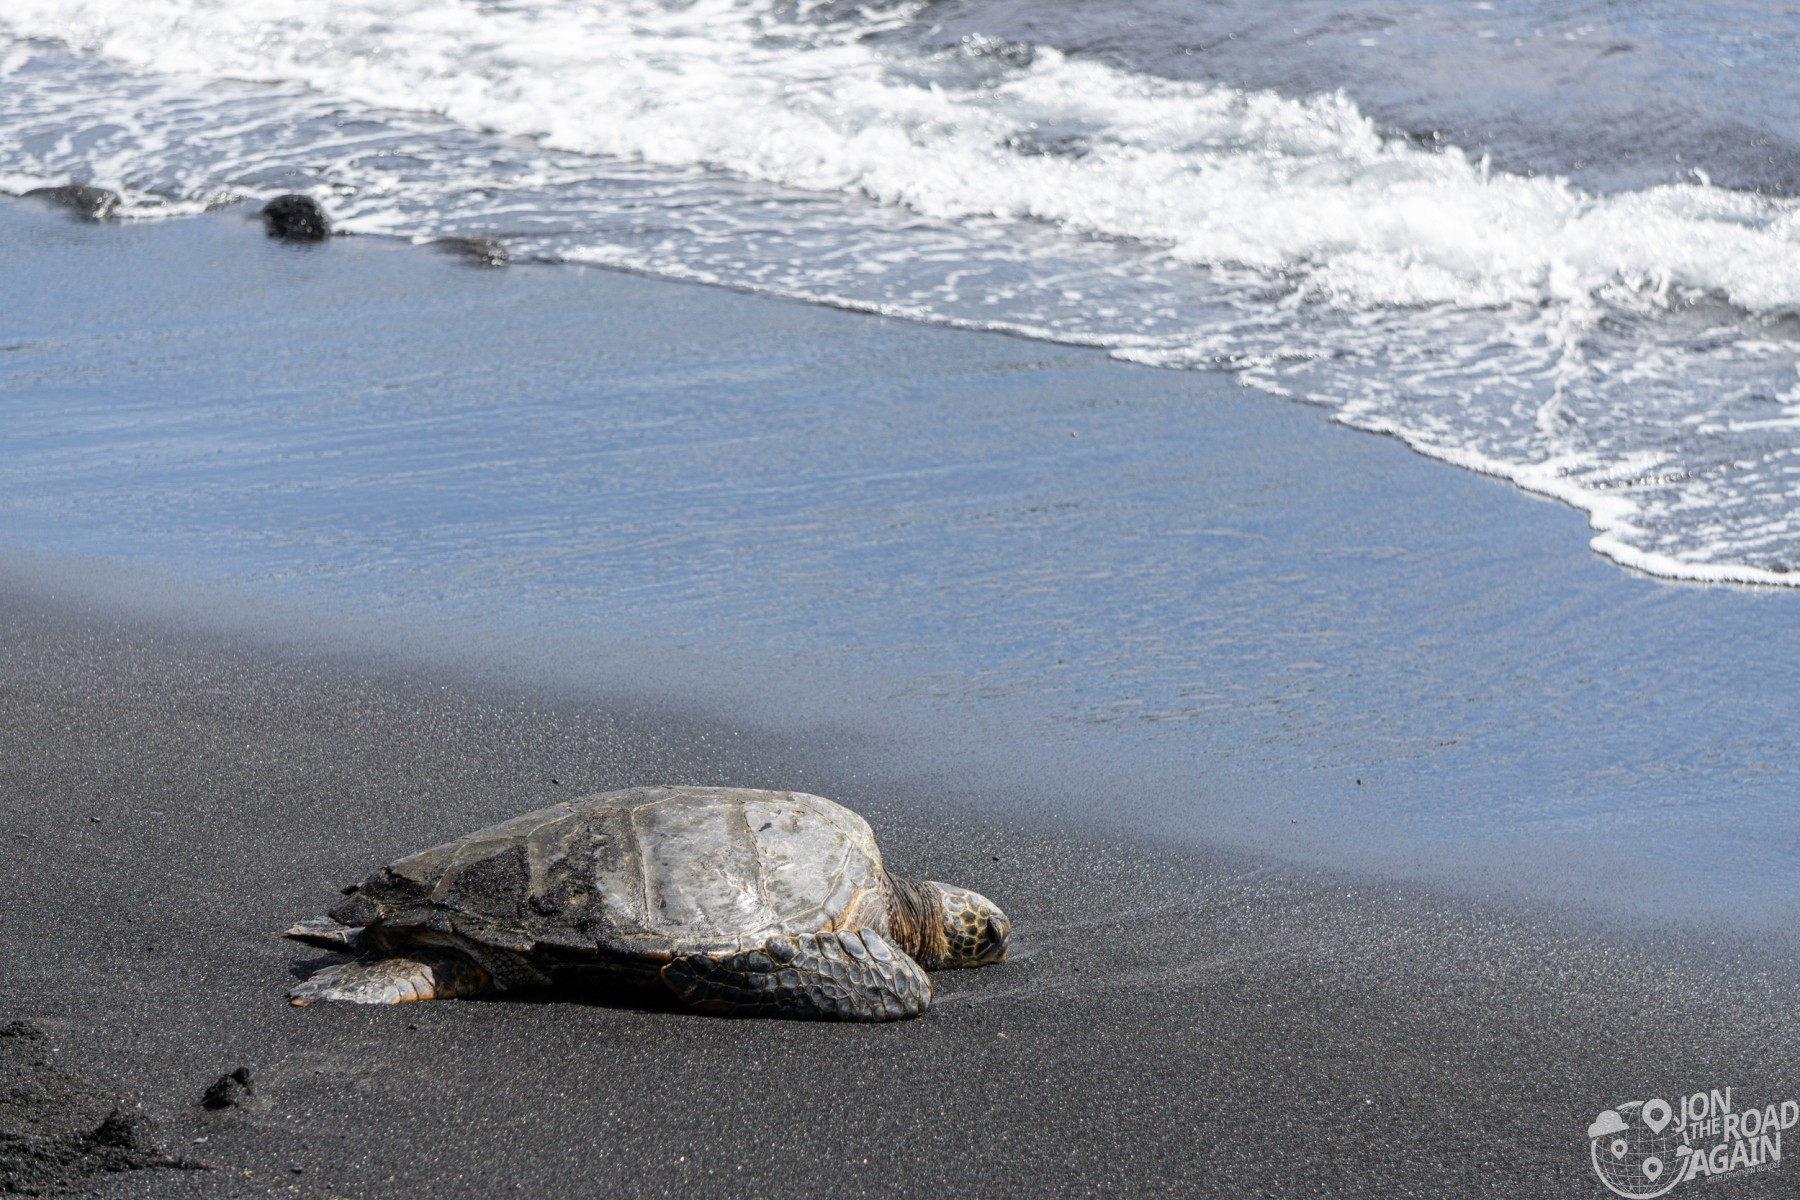 Turtle at Punalu'u black sand beach